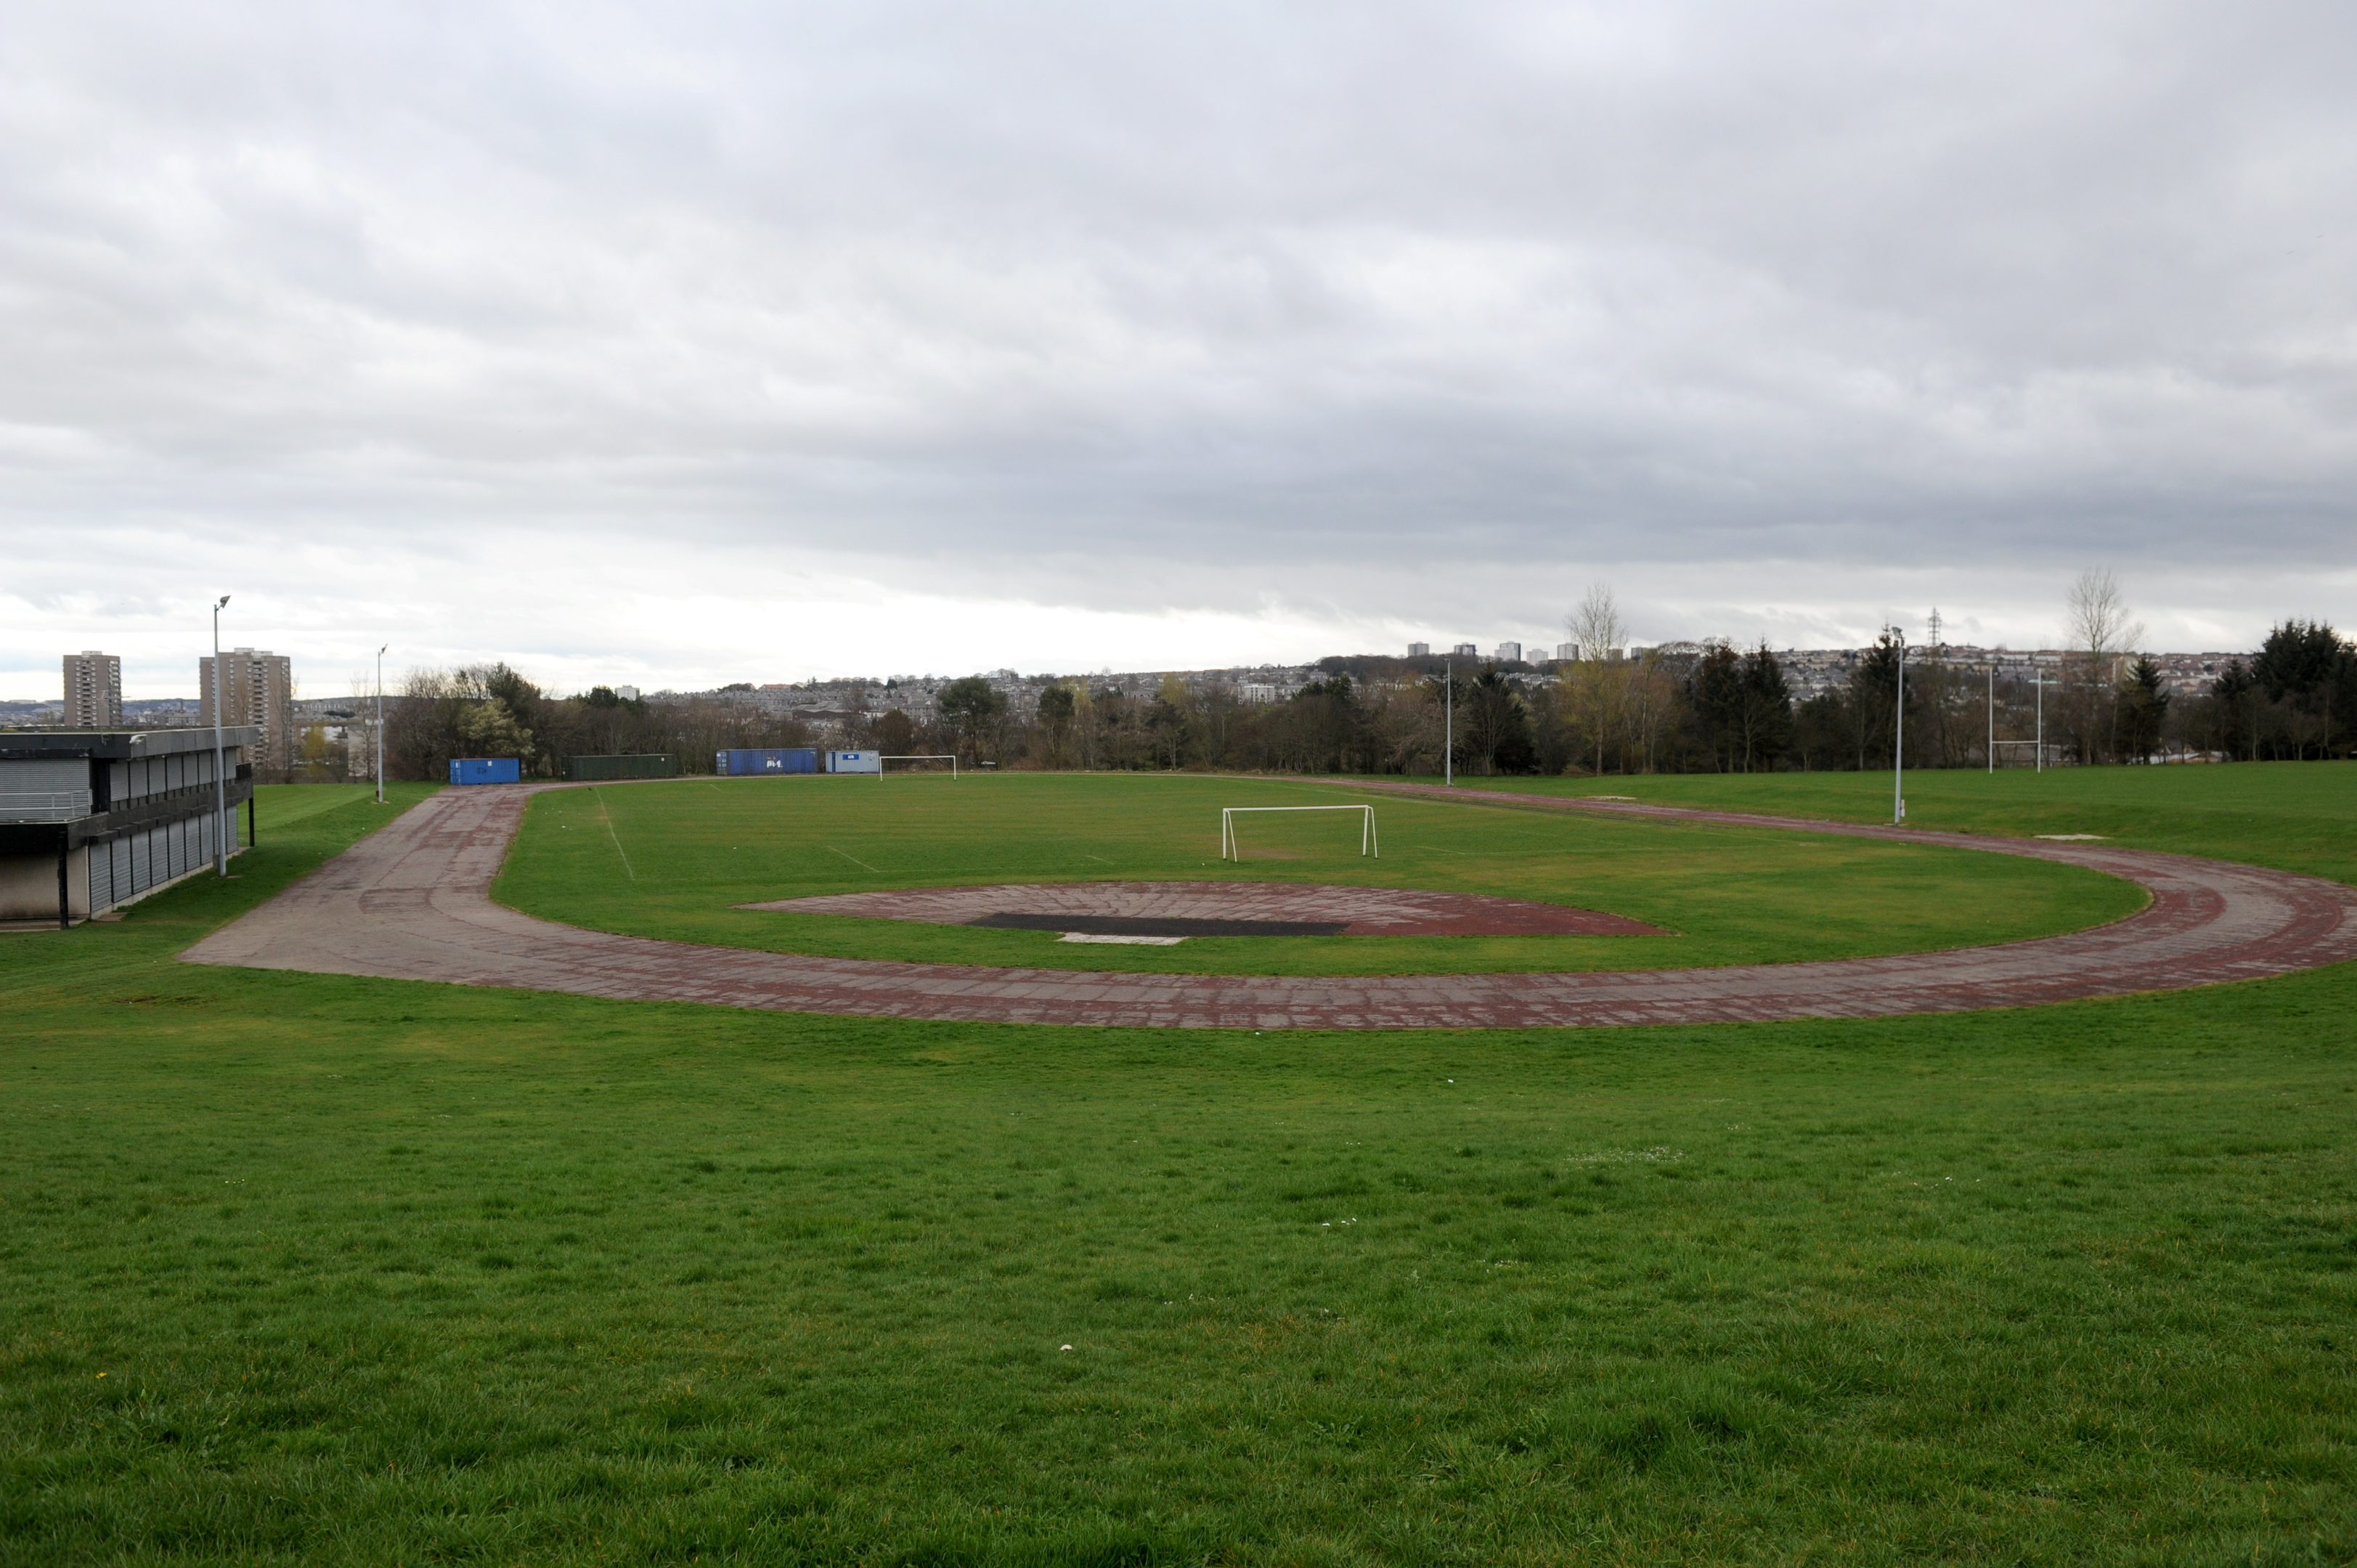 Balgownie football pitches and sports fields in Aberdeen